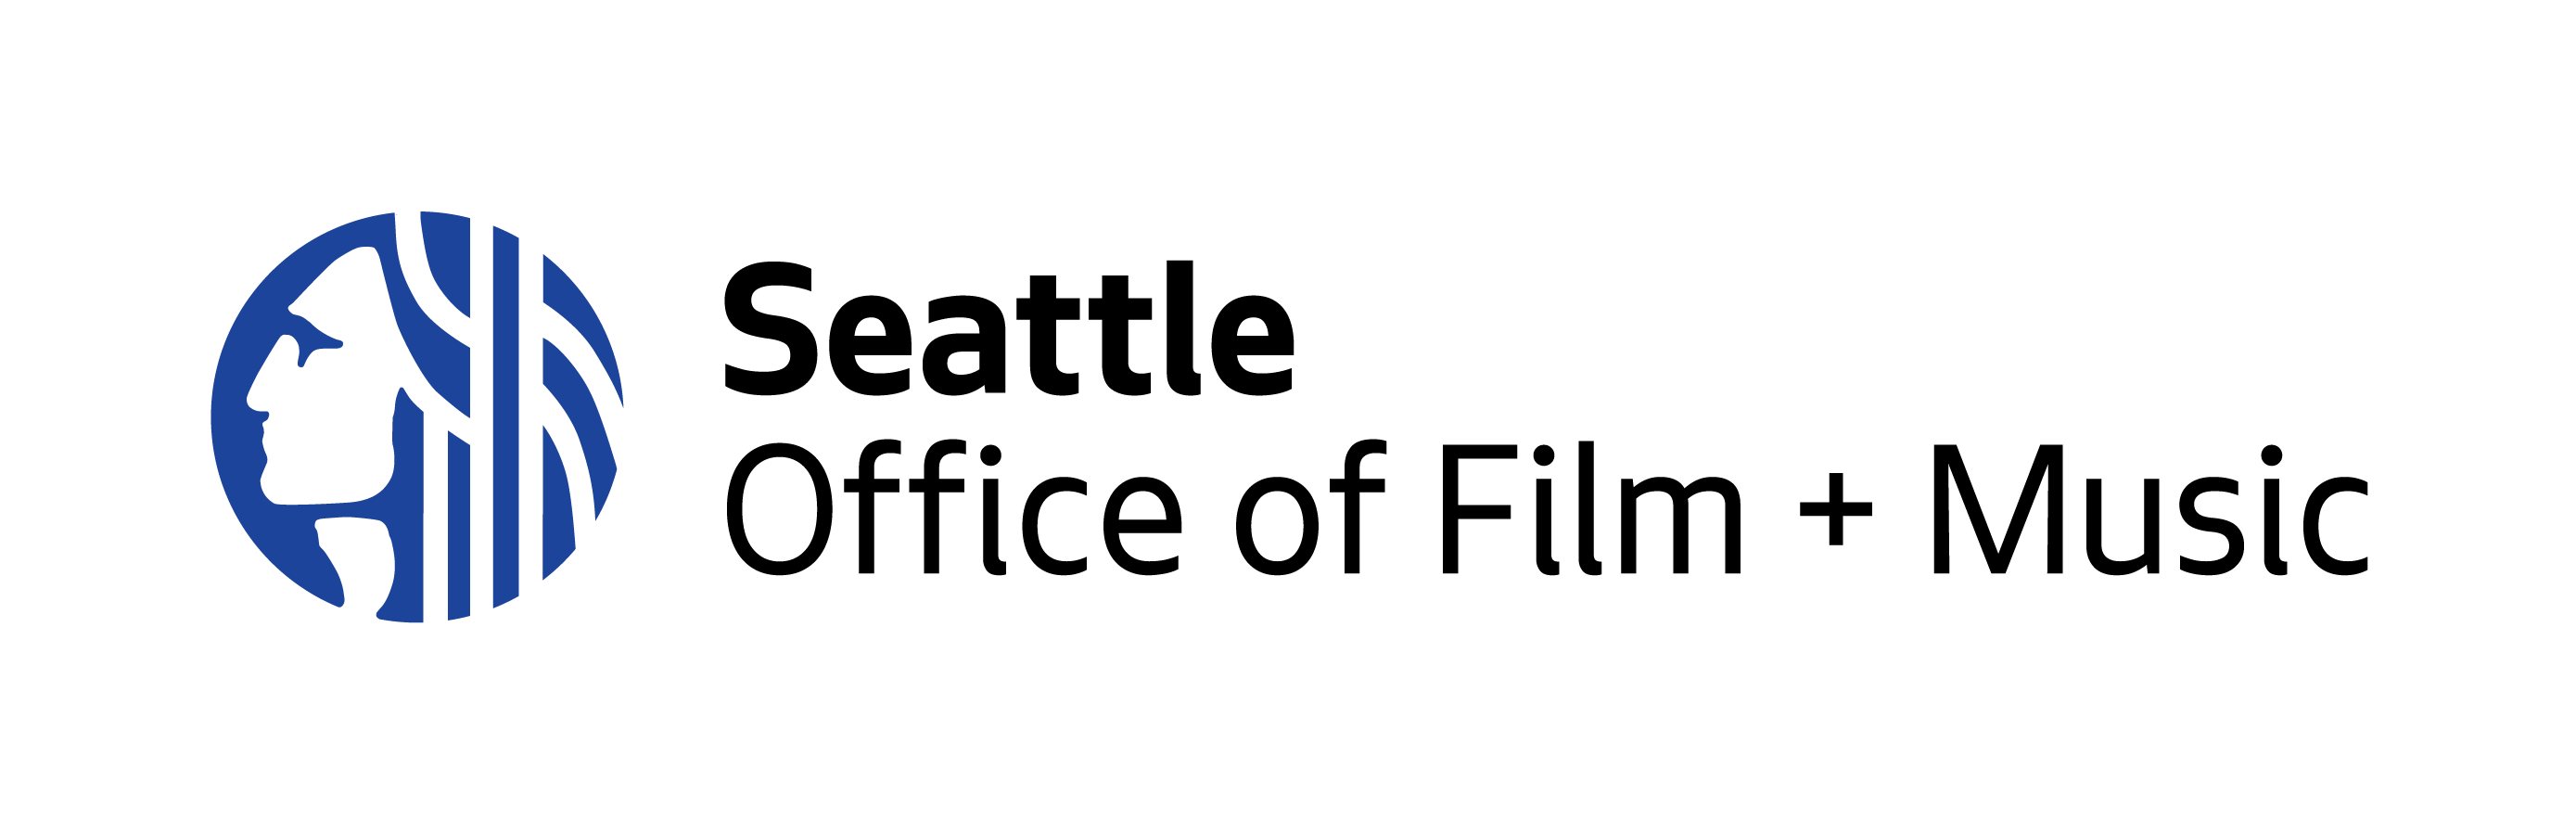 Office of Film and Music Logo